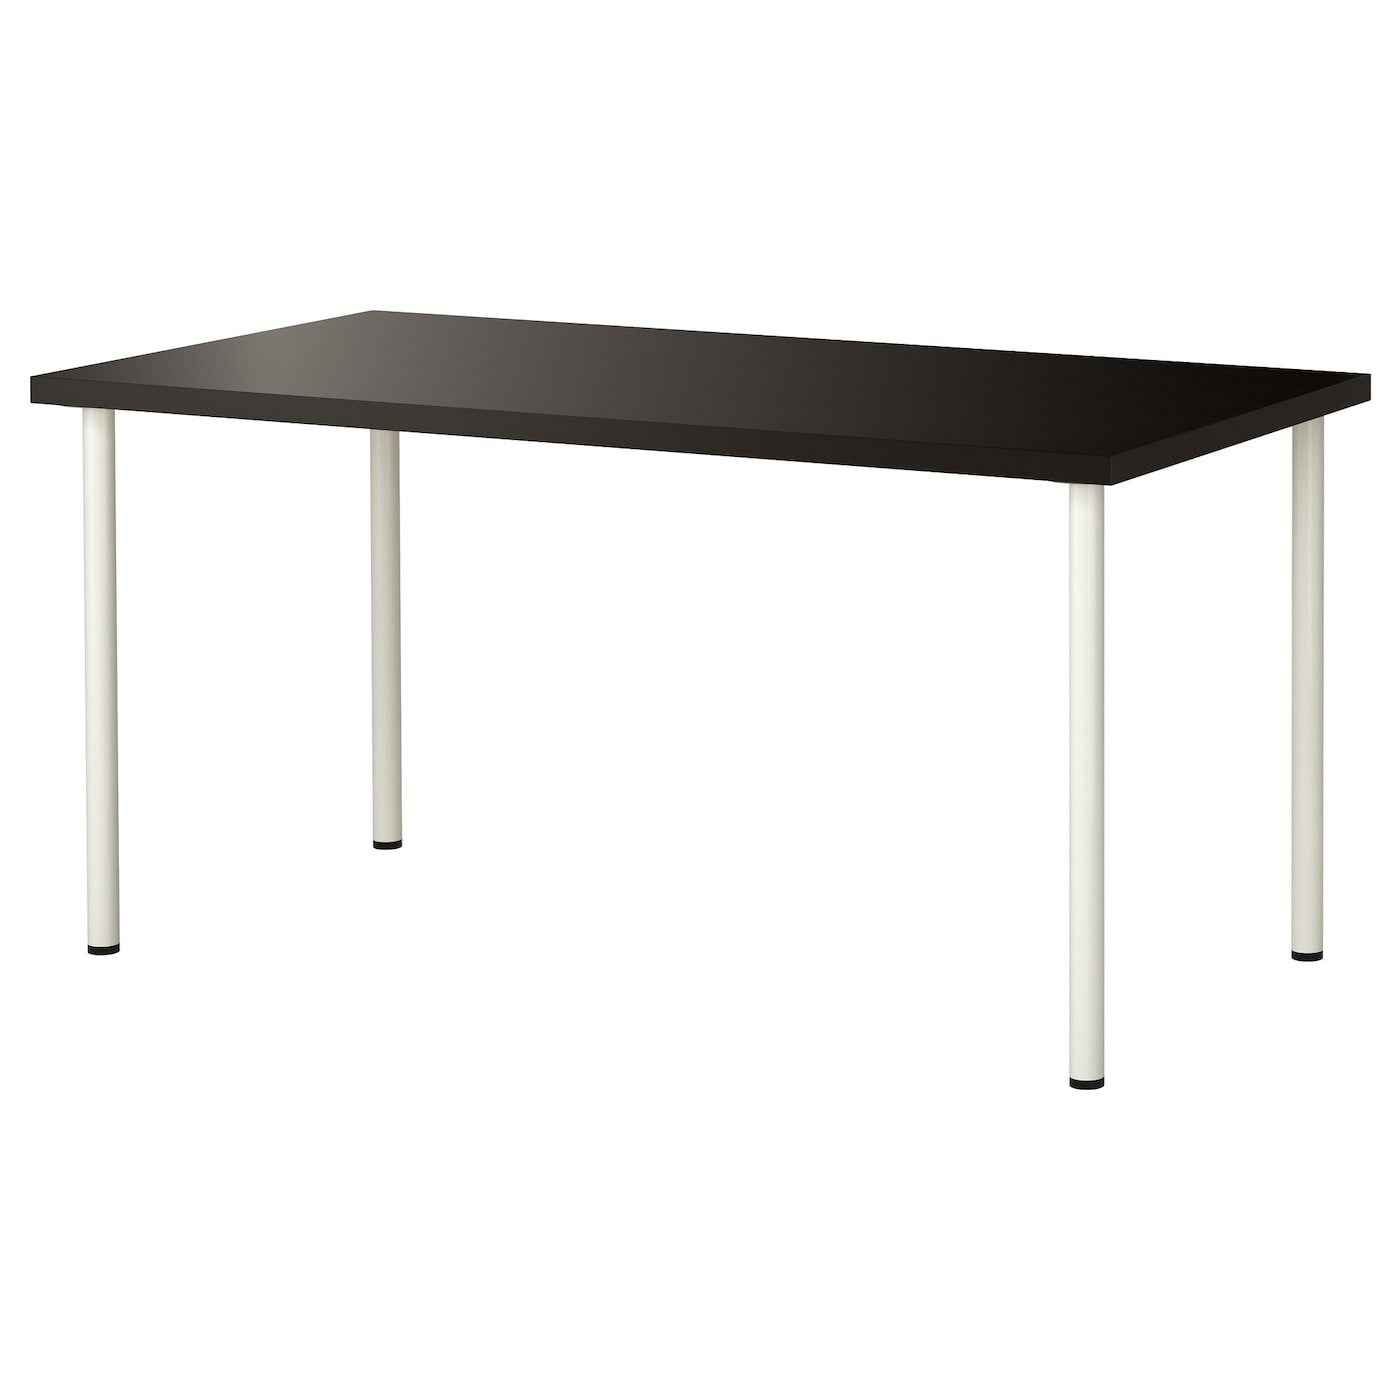 adils linnmon table black brown white 150x75 cm ikea. Black Bedroom Furniture Sets. Home Design Ideas